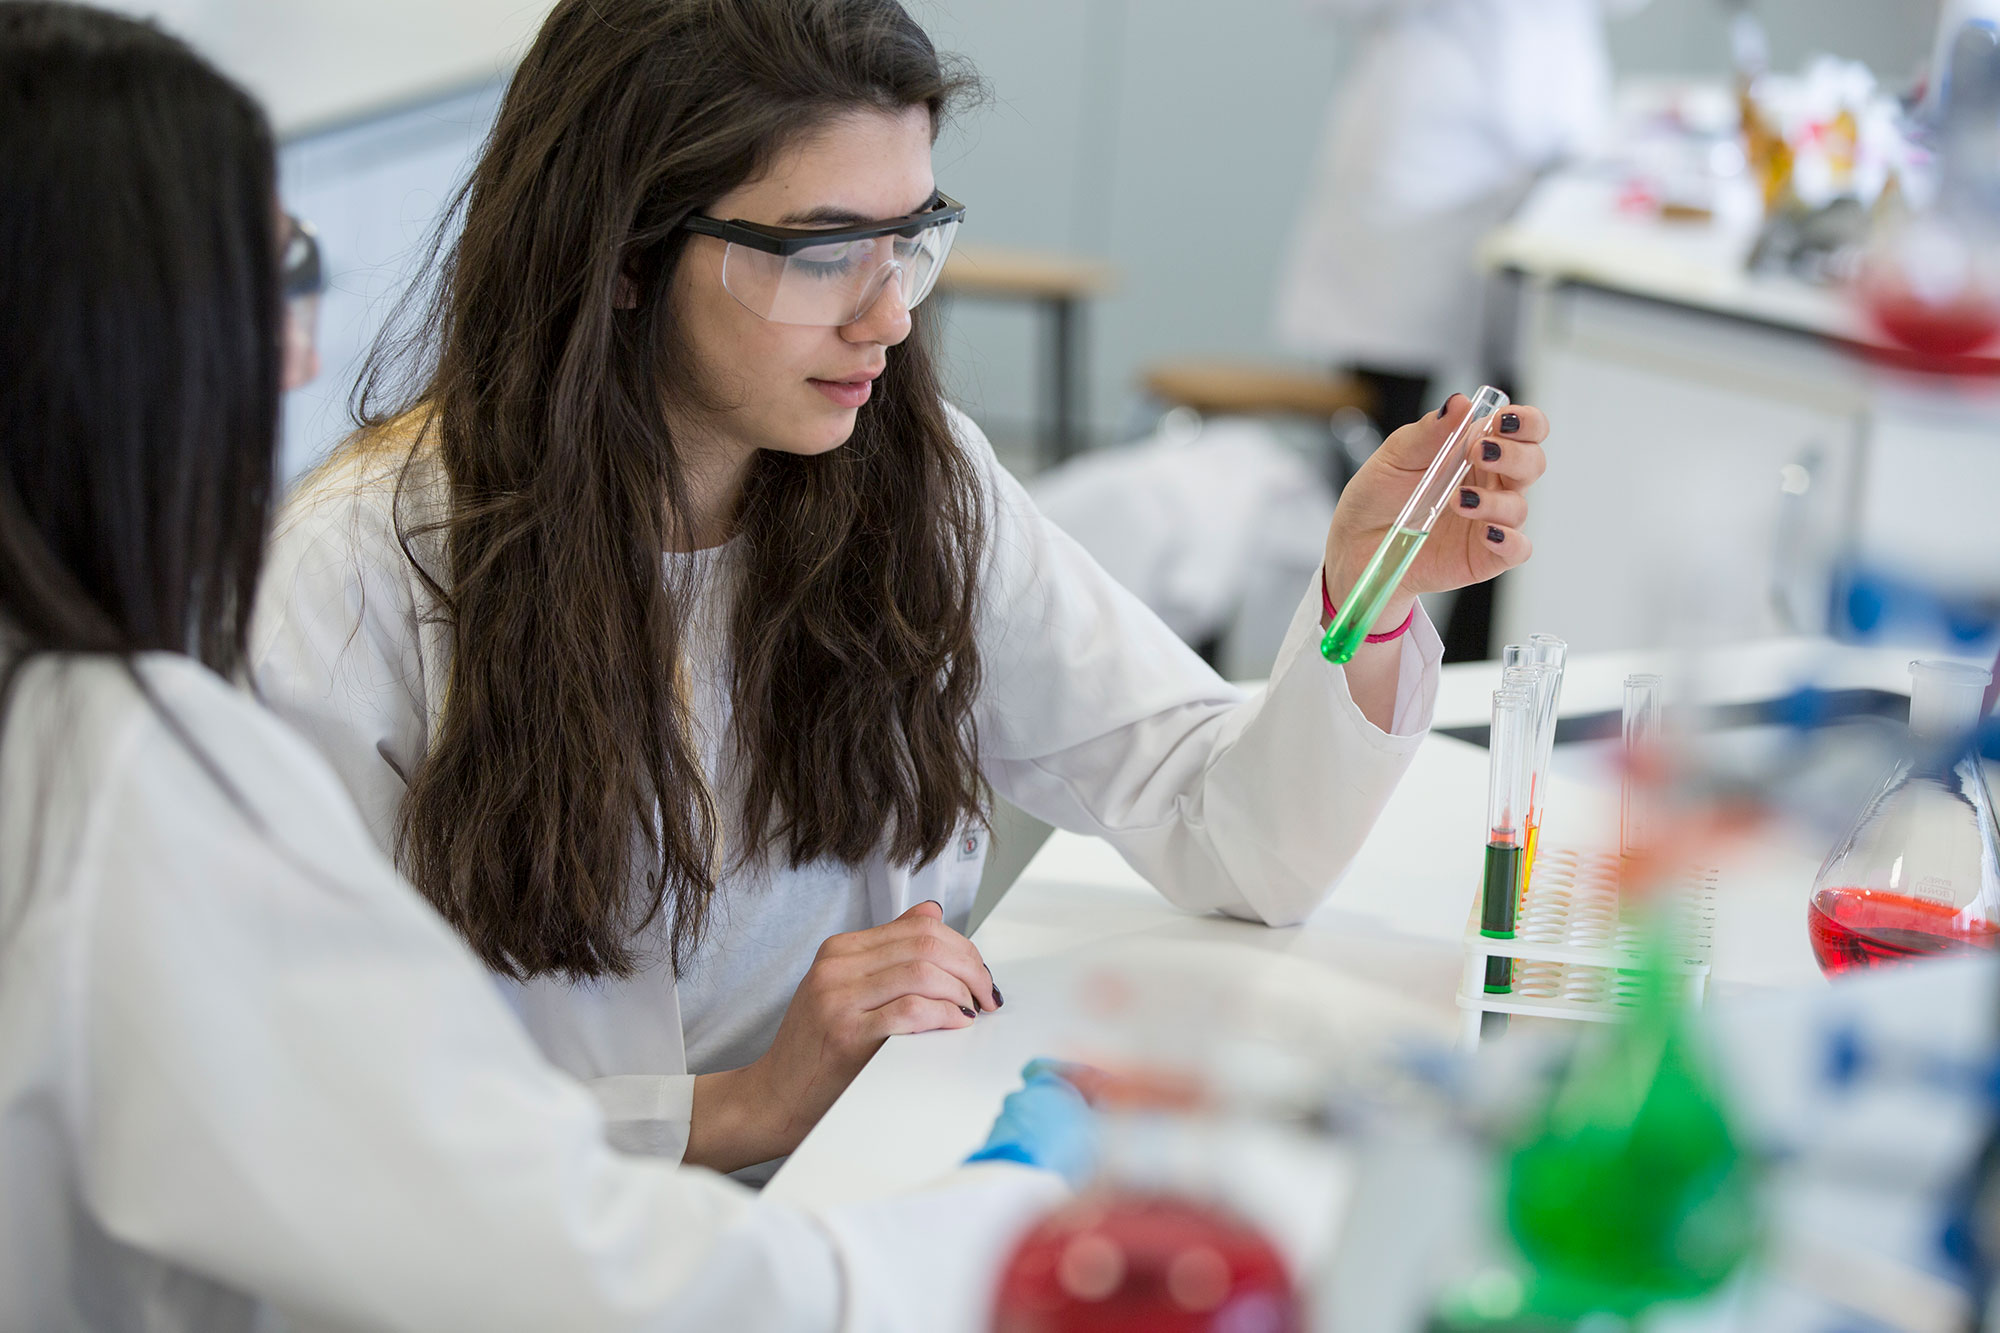 WEInnovate - The development of world-class talent in science, technology, engineering, and mathematics (STEM) is essential to the economic success of any nation. The Althea Foundation and Imperial College London understand that promoting a diverse scientific community is necessary to realize this objective.